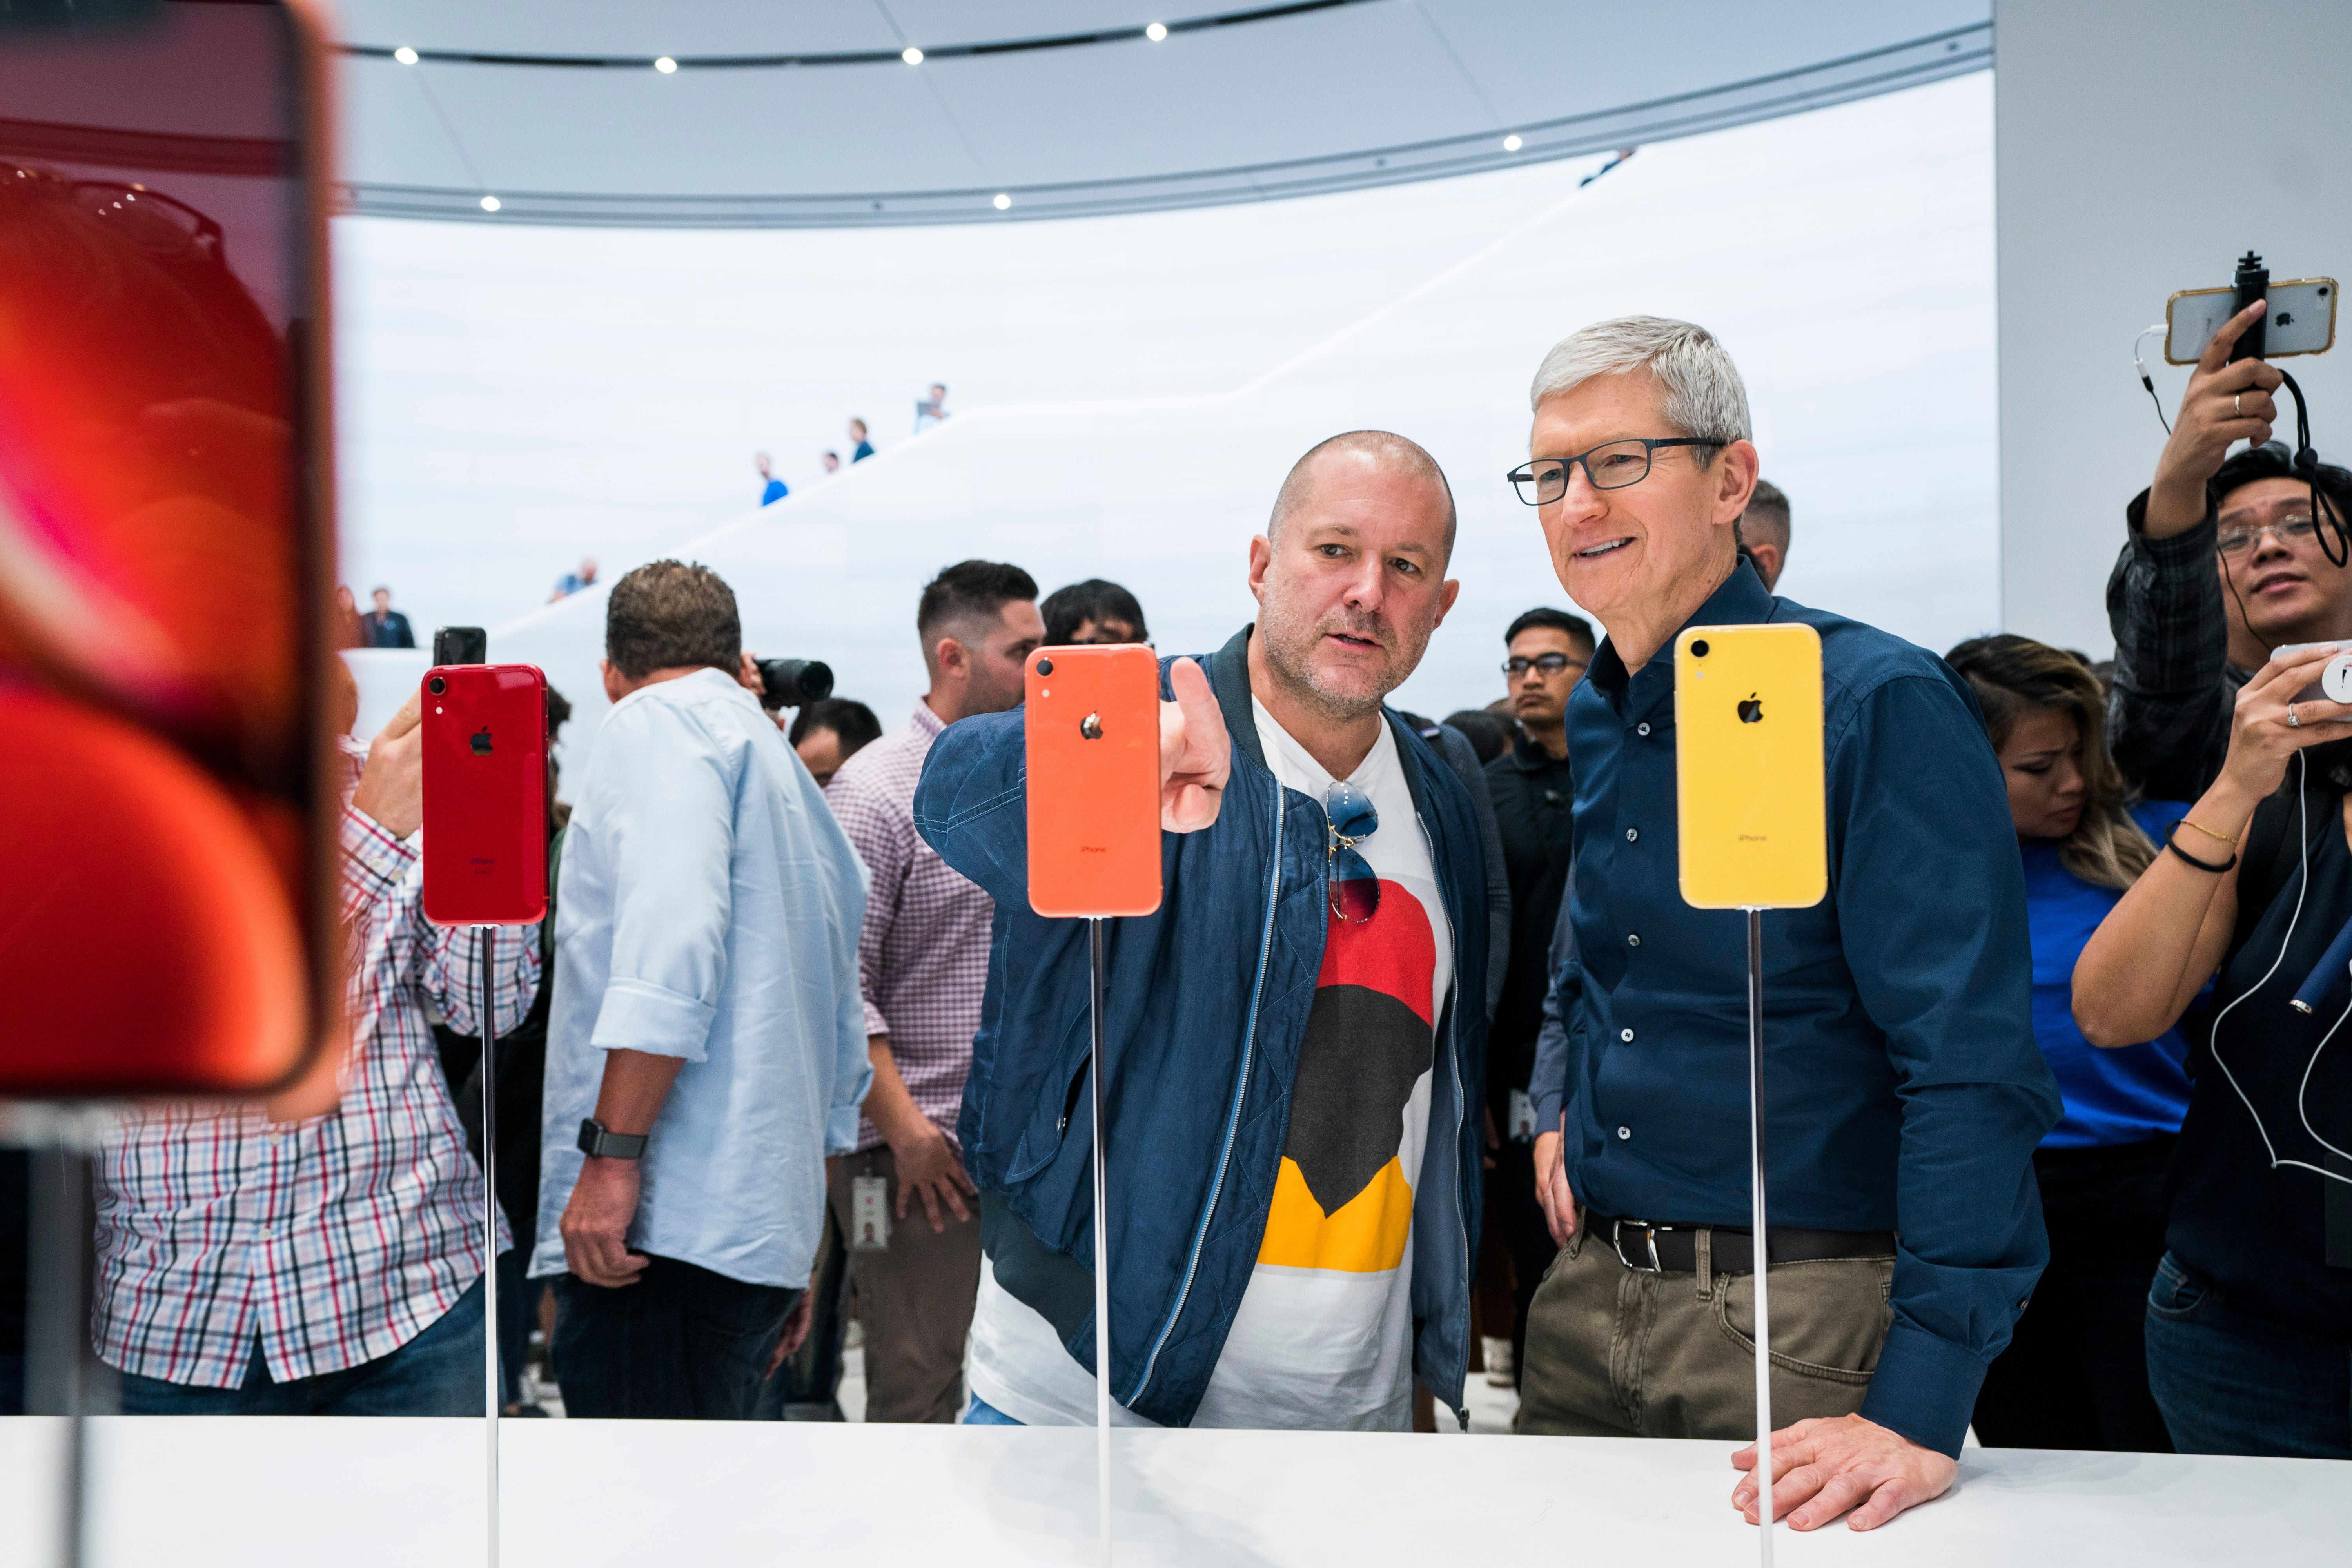 Apple design chief Sir Jony Ive to leave to form his own company